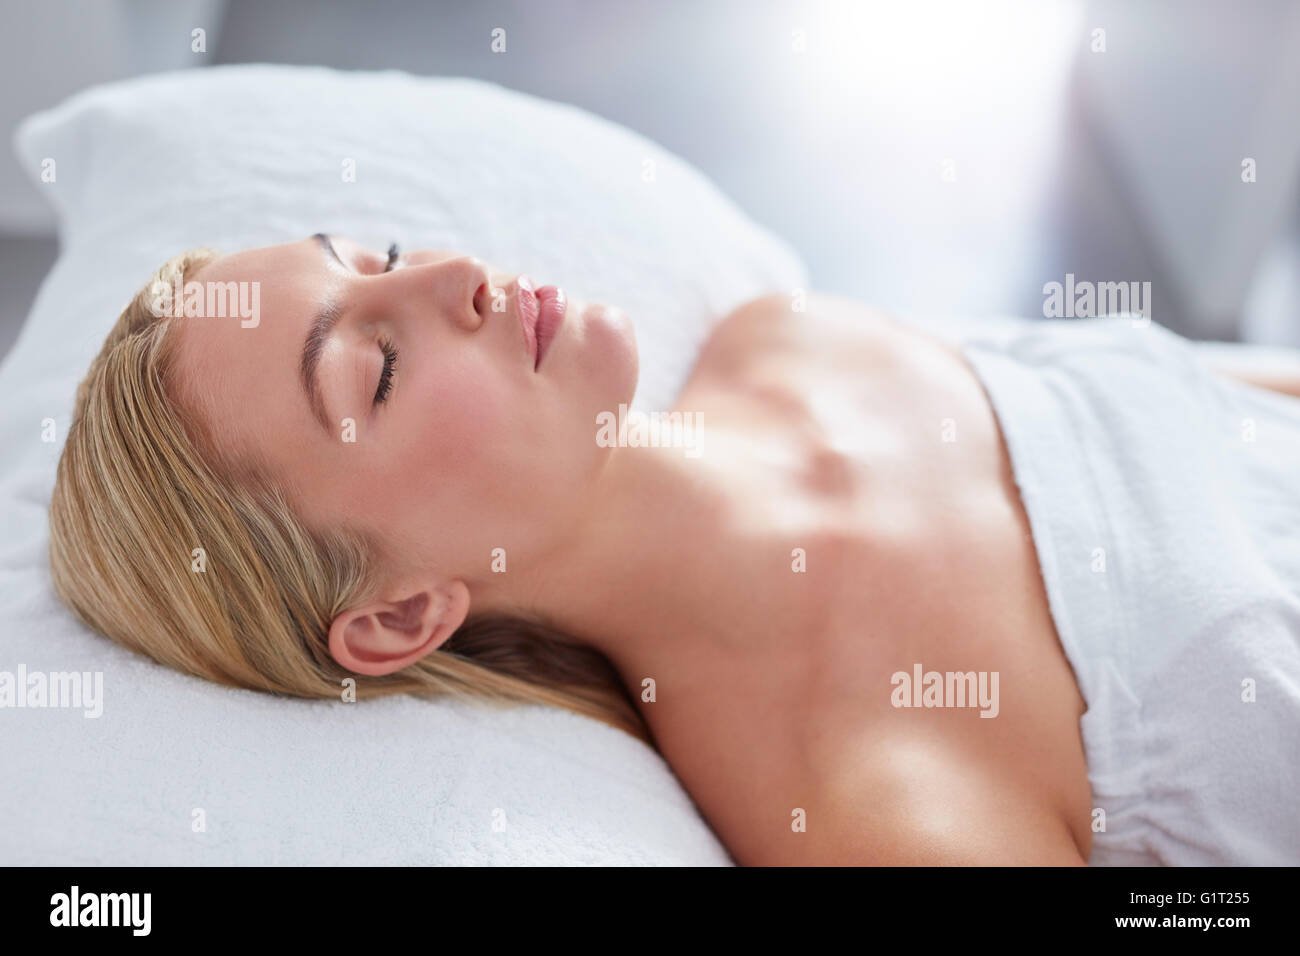 Close up of attractive woman. médecine centres de Elle est couchée sur la table de massage. Concept de Photo Stock